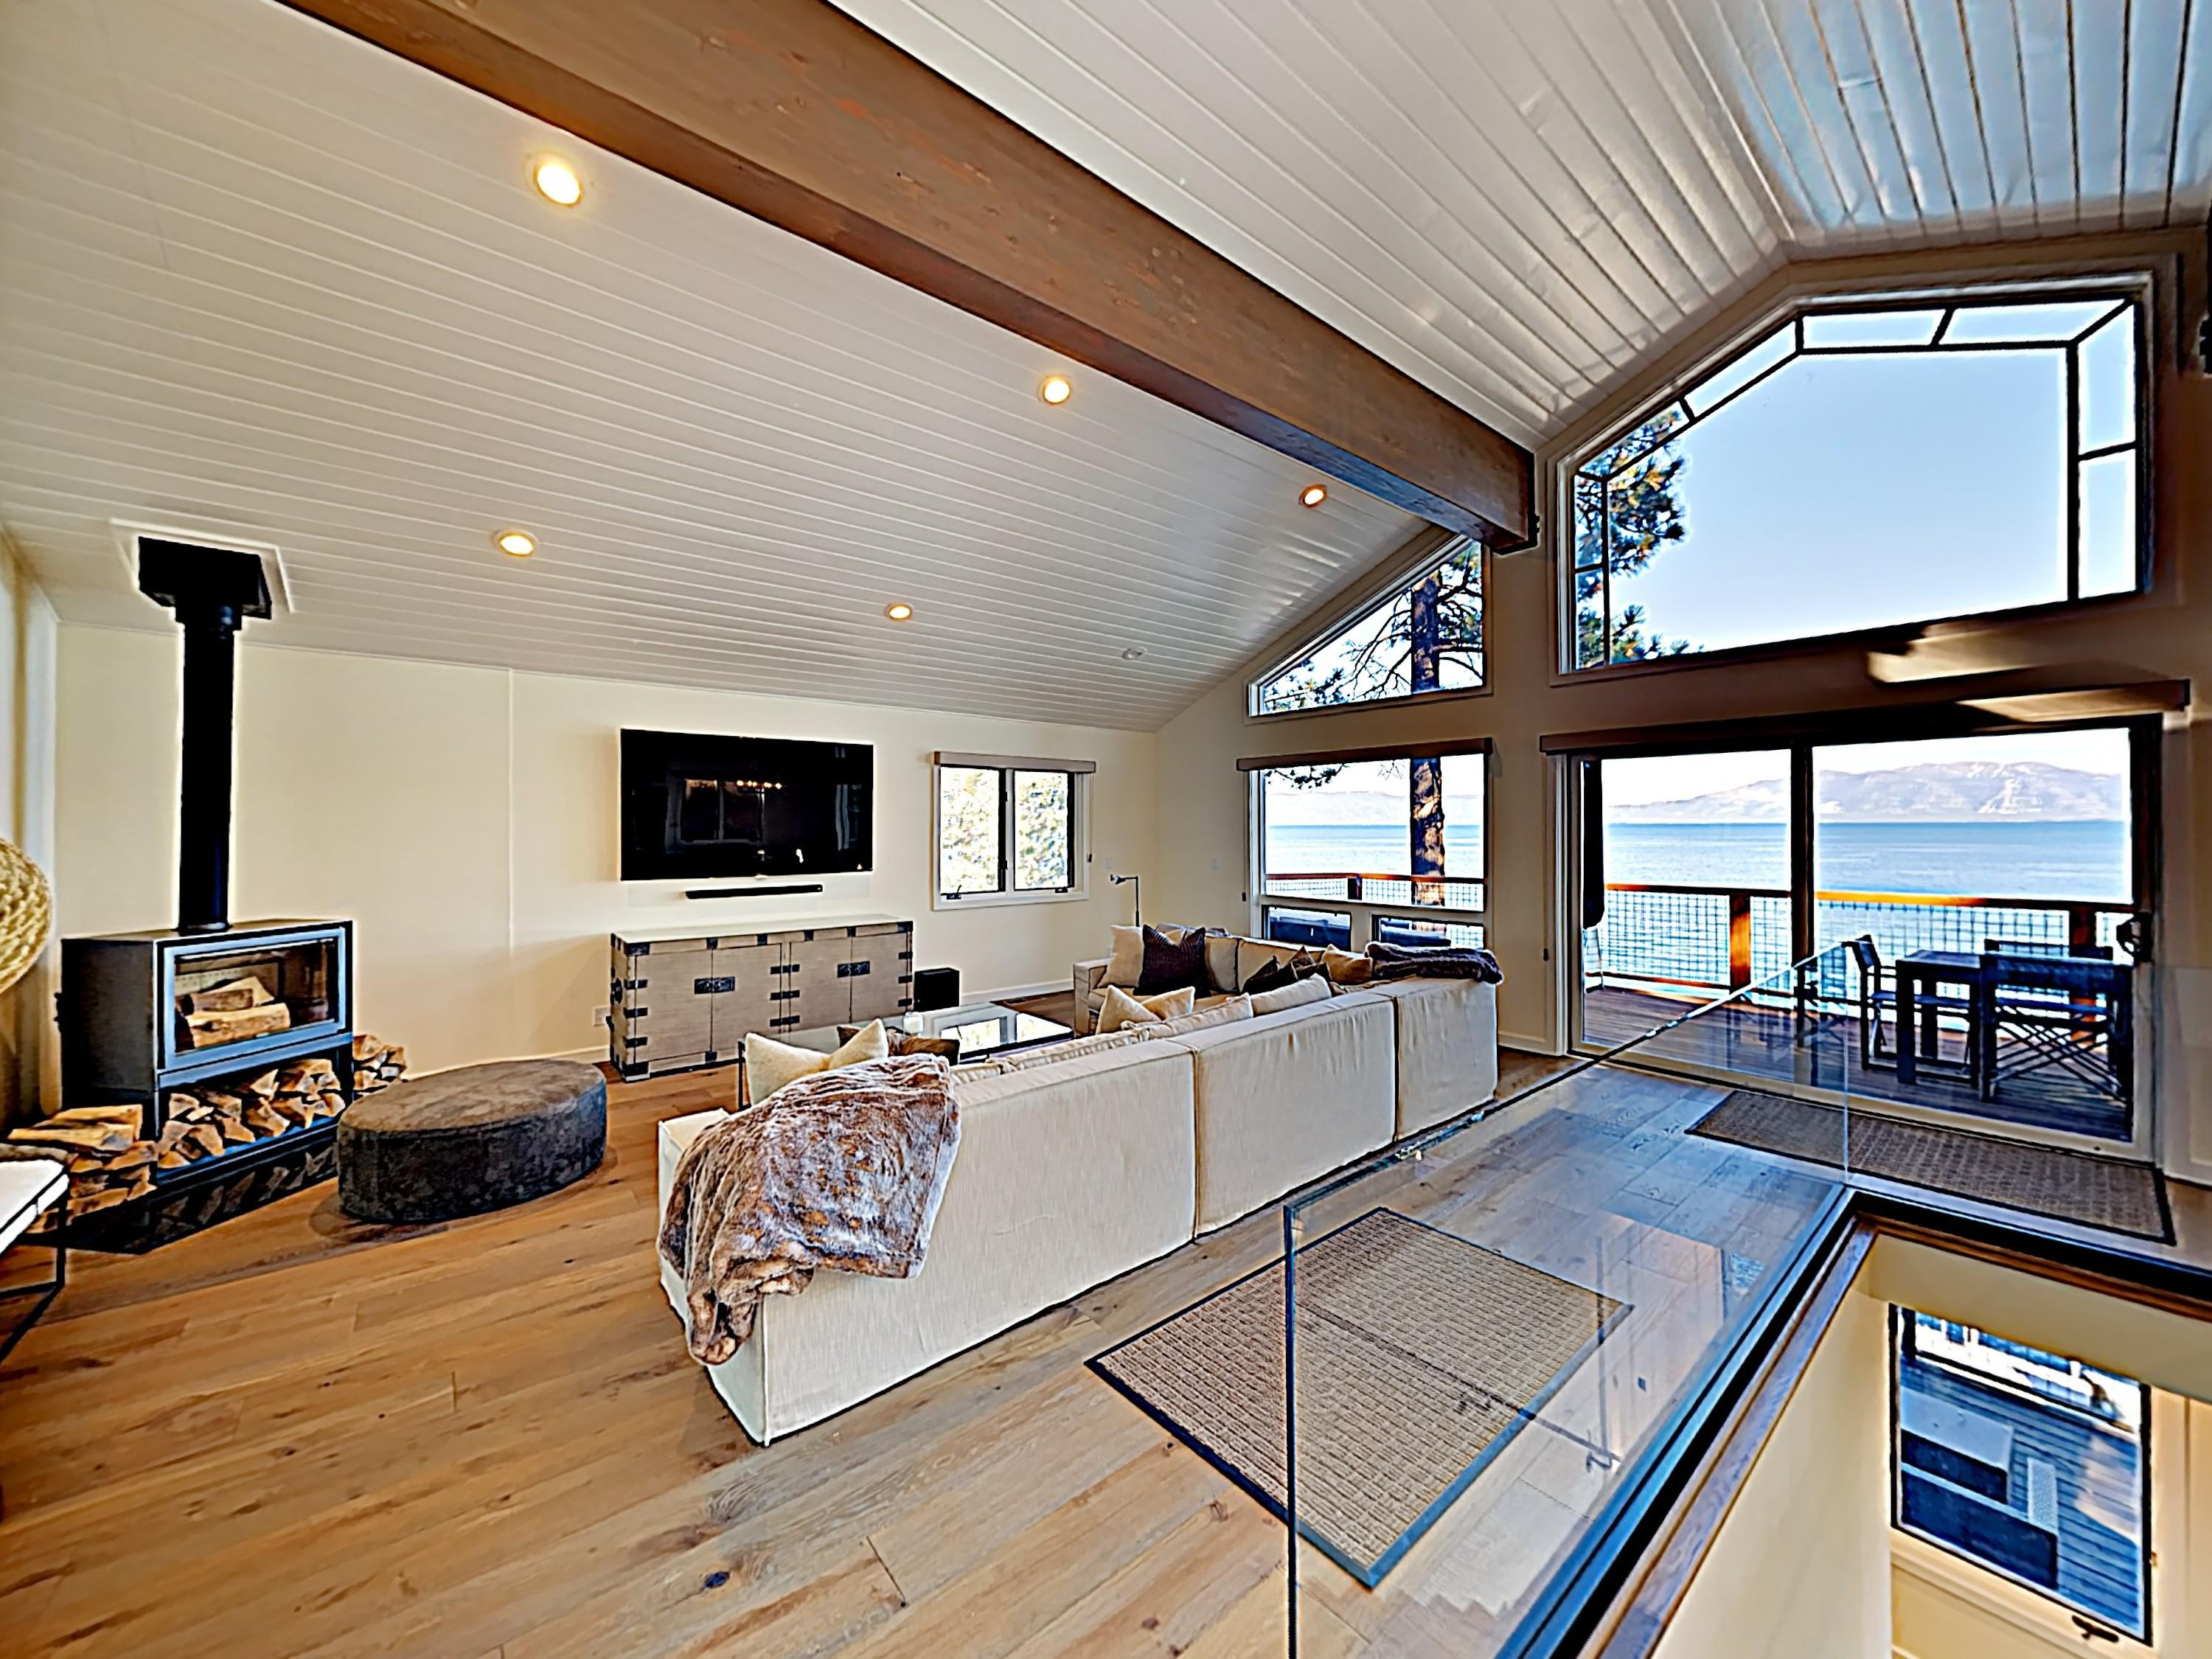 Property Image 2 - Stunning Lakefront Chalet with Private Dock and Hot Tub